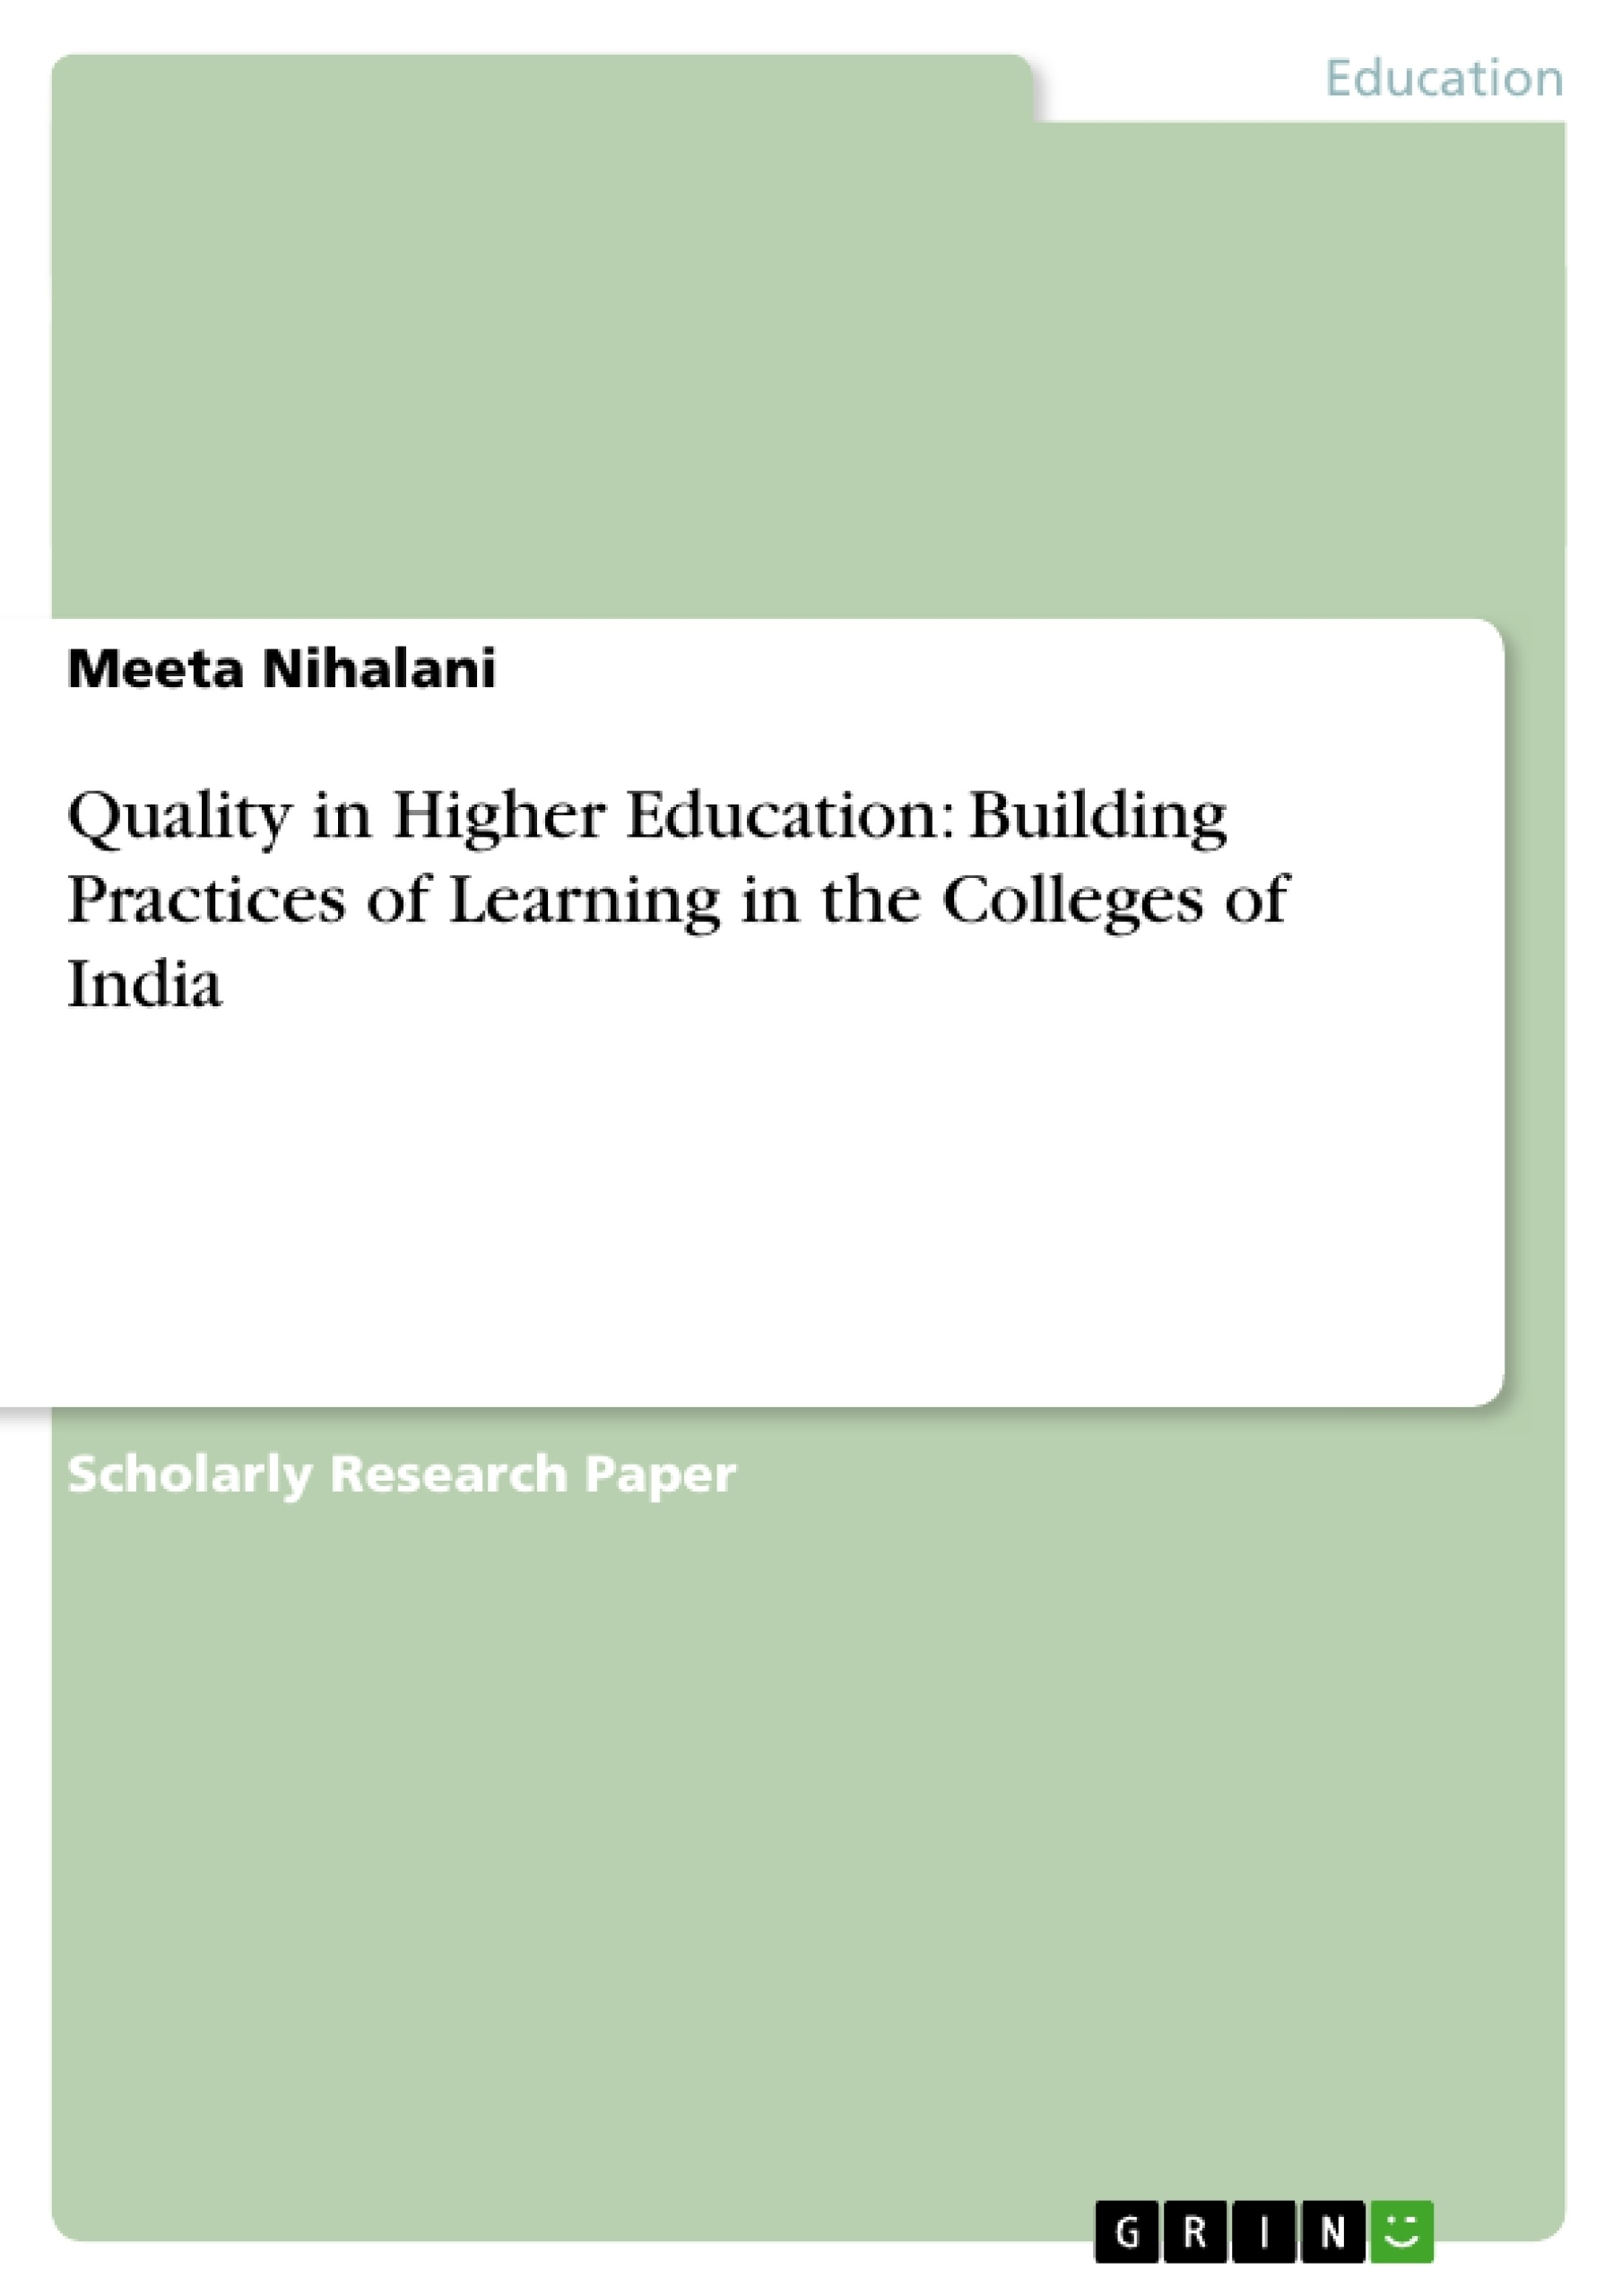 Title: Quality in Higher Education: Building Practices of Learning in the Colleges of India